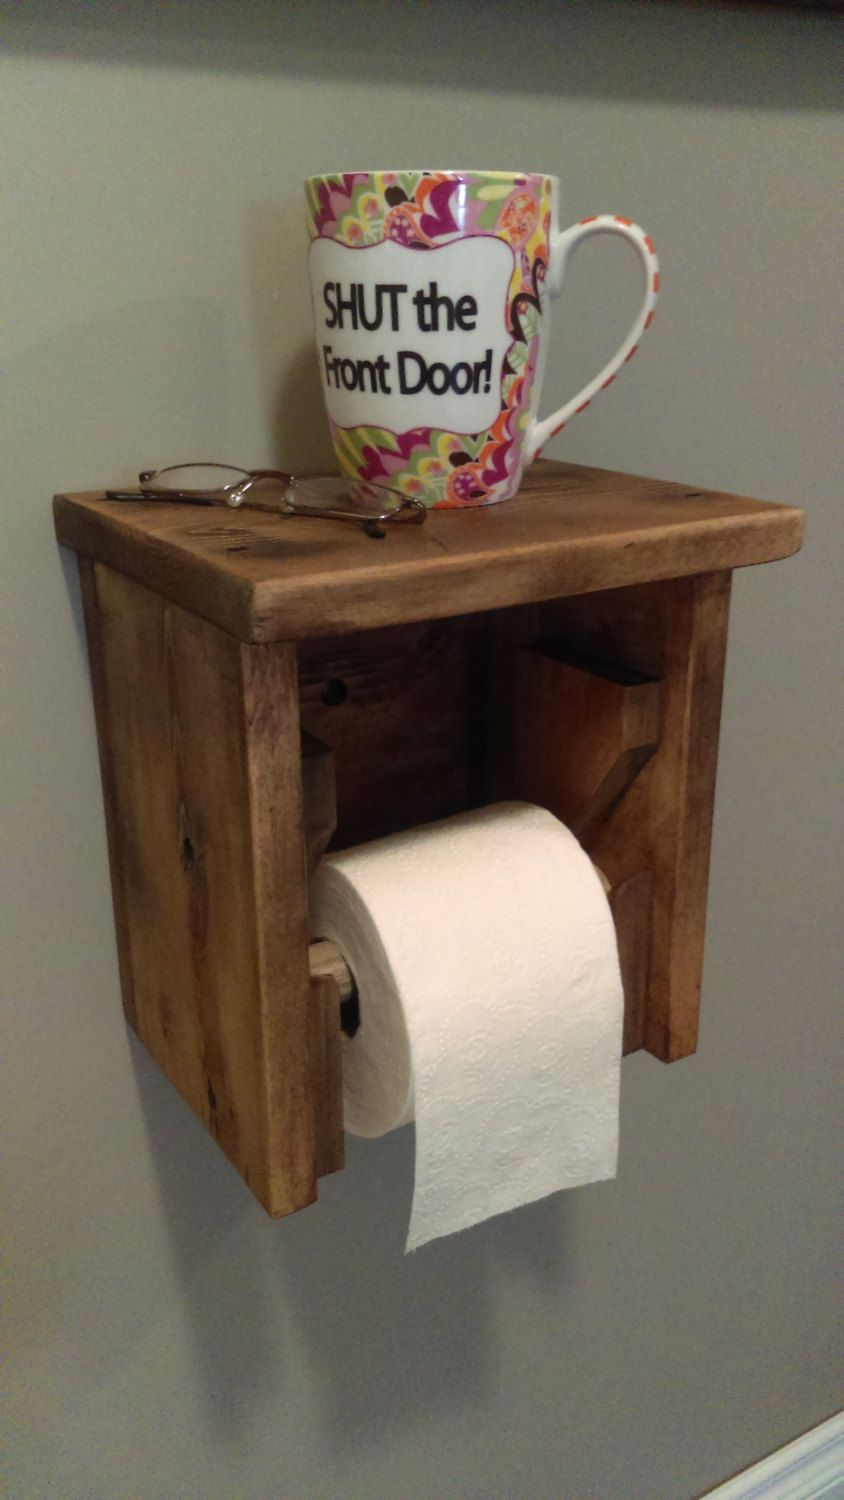 Rustic Toilet Roll Holder Toilet Paper Holder Weathered Barn Board Cabin Furnishings Cottage Accessories Bathroom Shelf Toilet Paper In 2020 Toilet Roll Holder Rustic Toilets Toilet Paper Holder